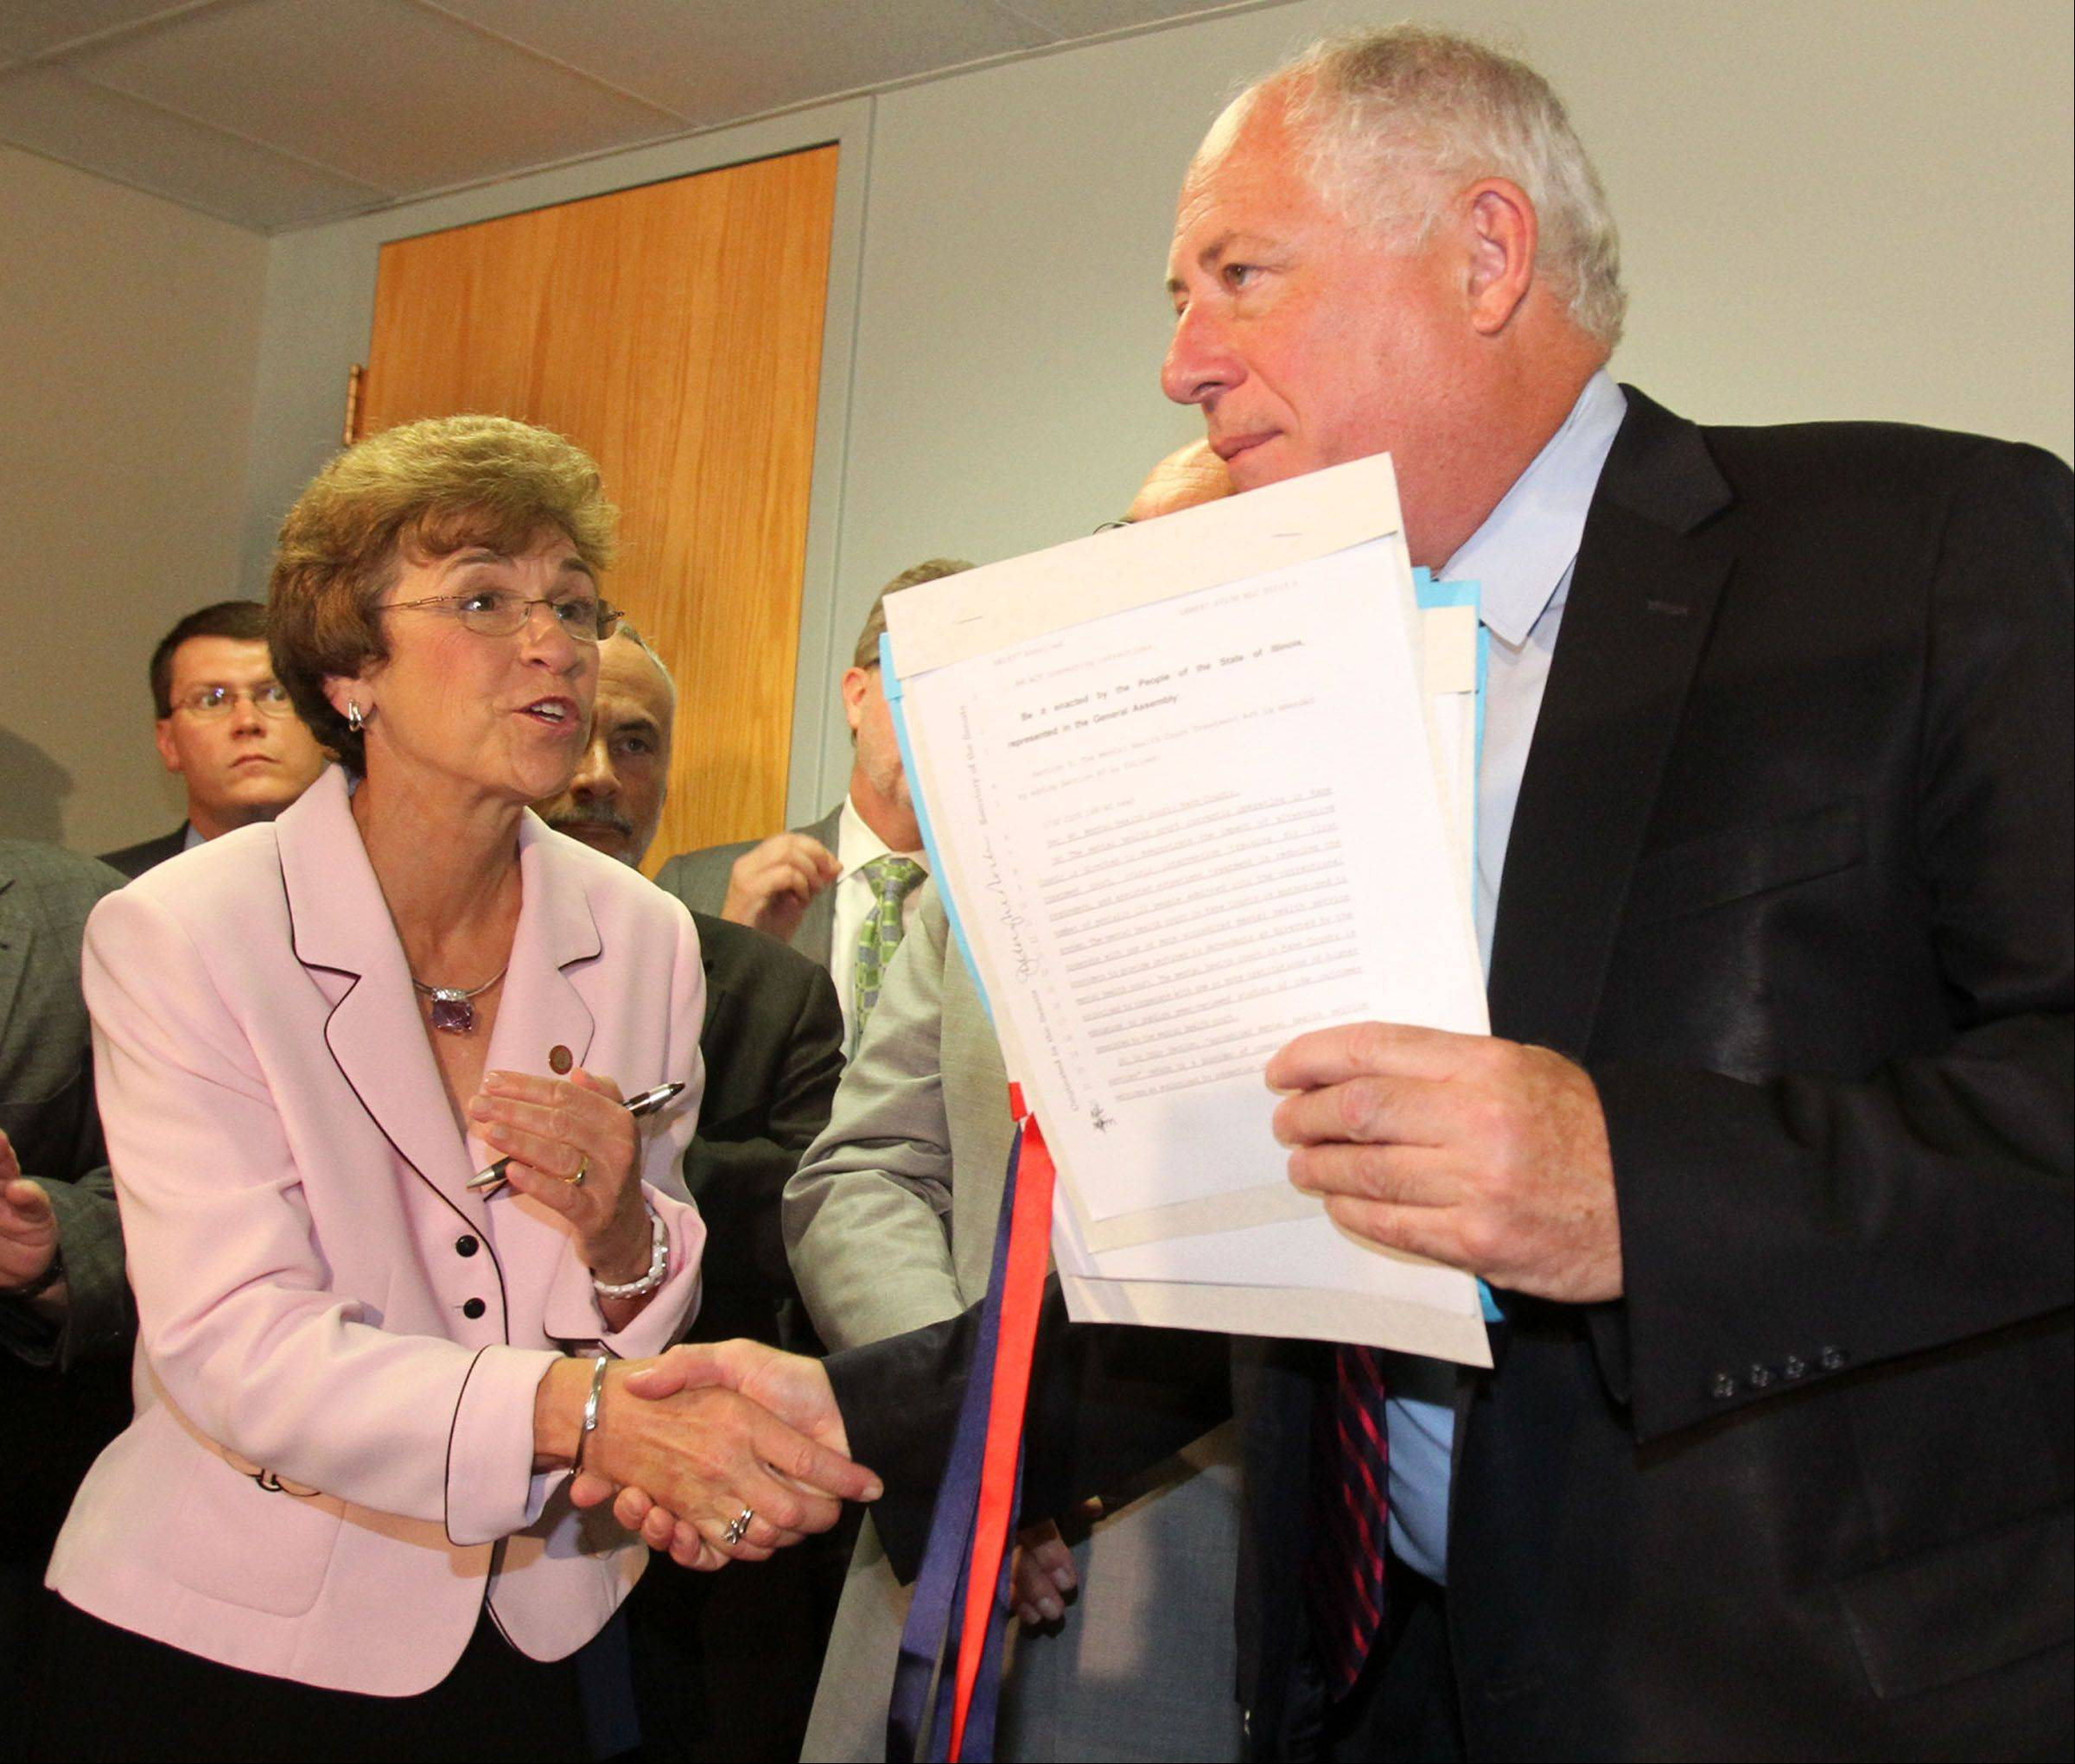 Arlington Heights Village President Arlene J. Mulder congratulates Gov. Pat Quinn after the governor signed two bills to improve the quality of life for people needing mental health services, on Aug. 18, 2011 at Alexian Brothers Center for Mental Health in Arlington Heights.